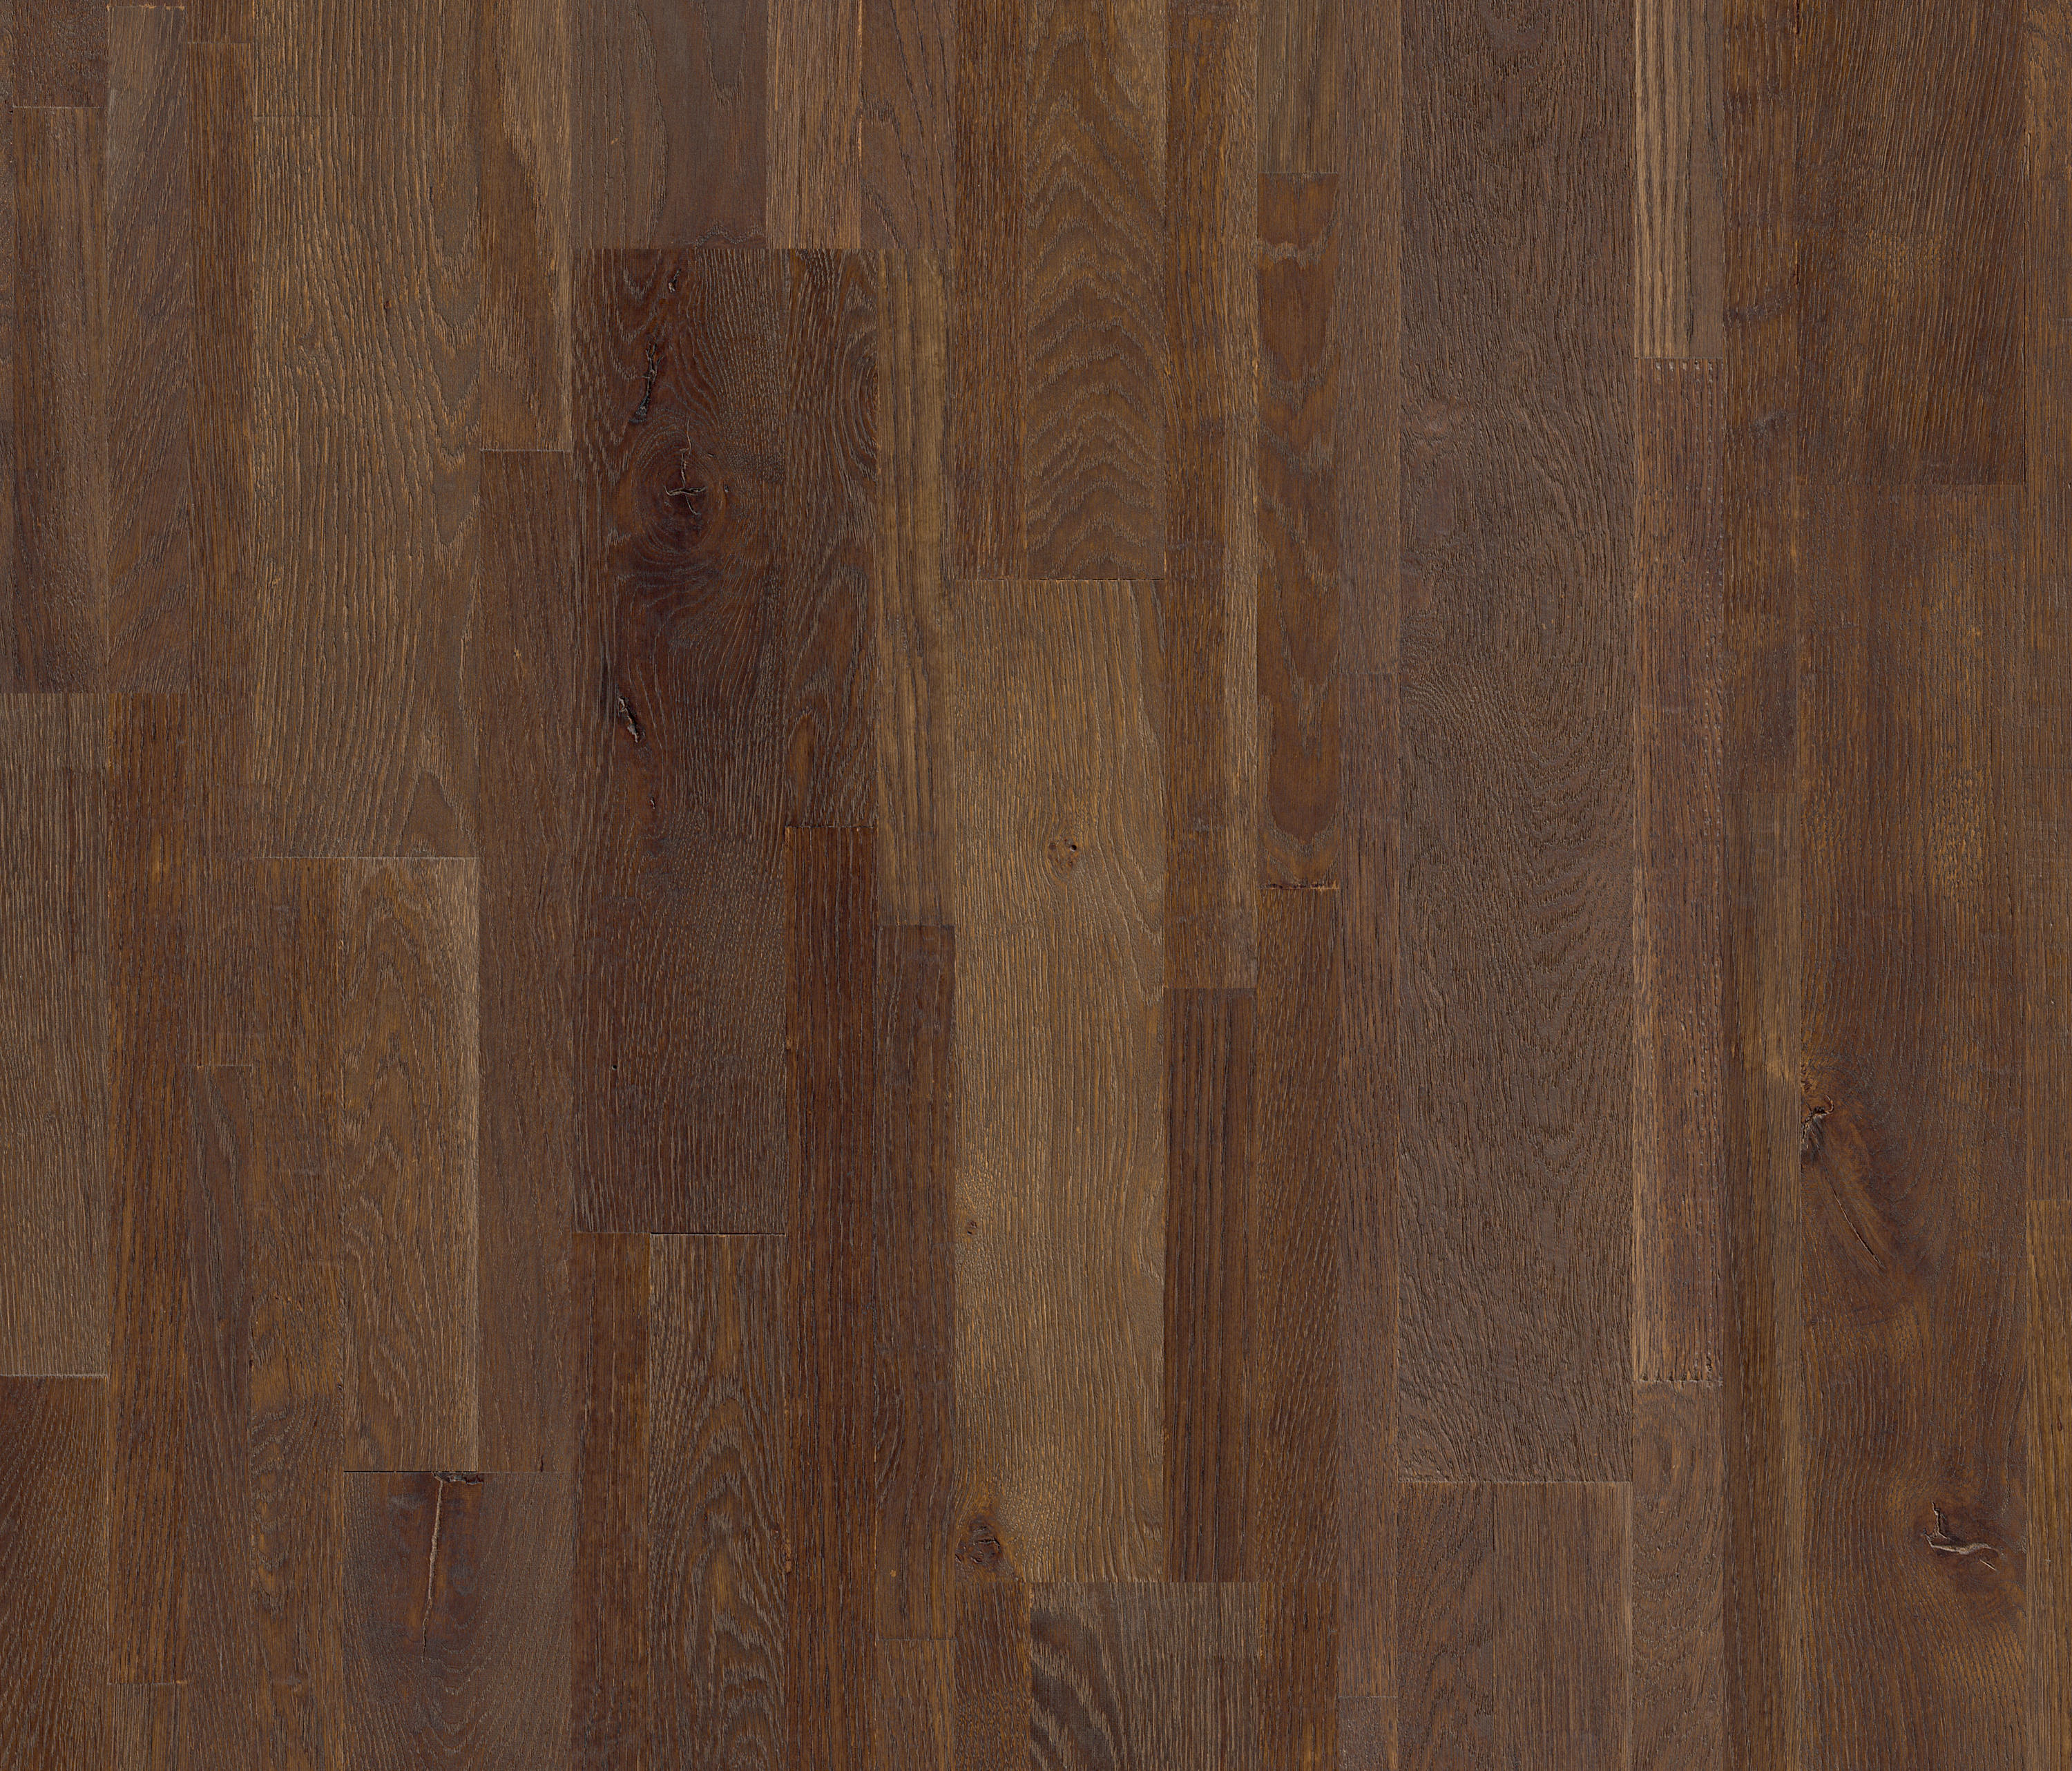 lauren pergo review why floors we home samples how and our wood chose flooring mcbride